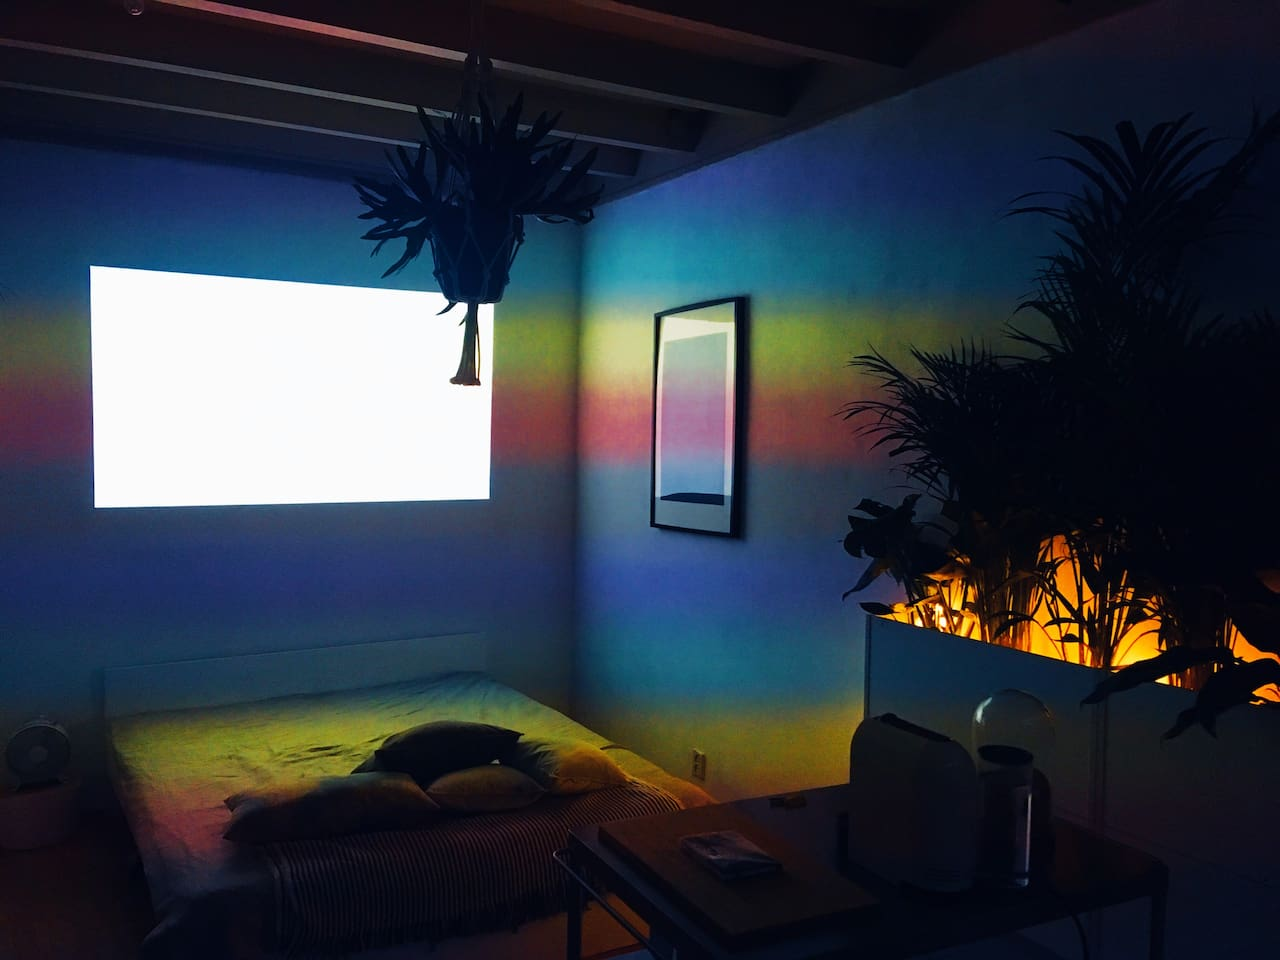 Jungle apartment with filmprojector